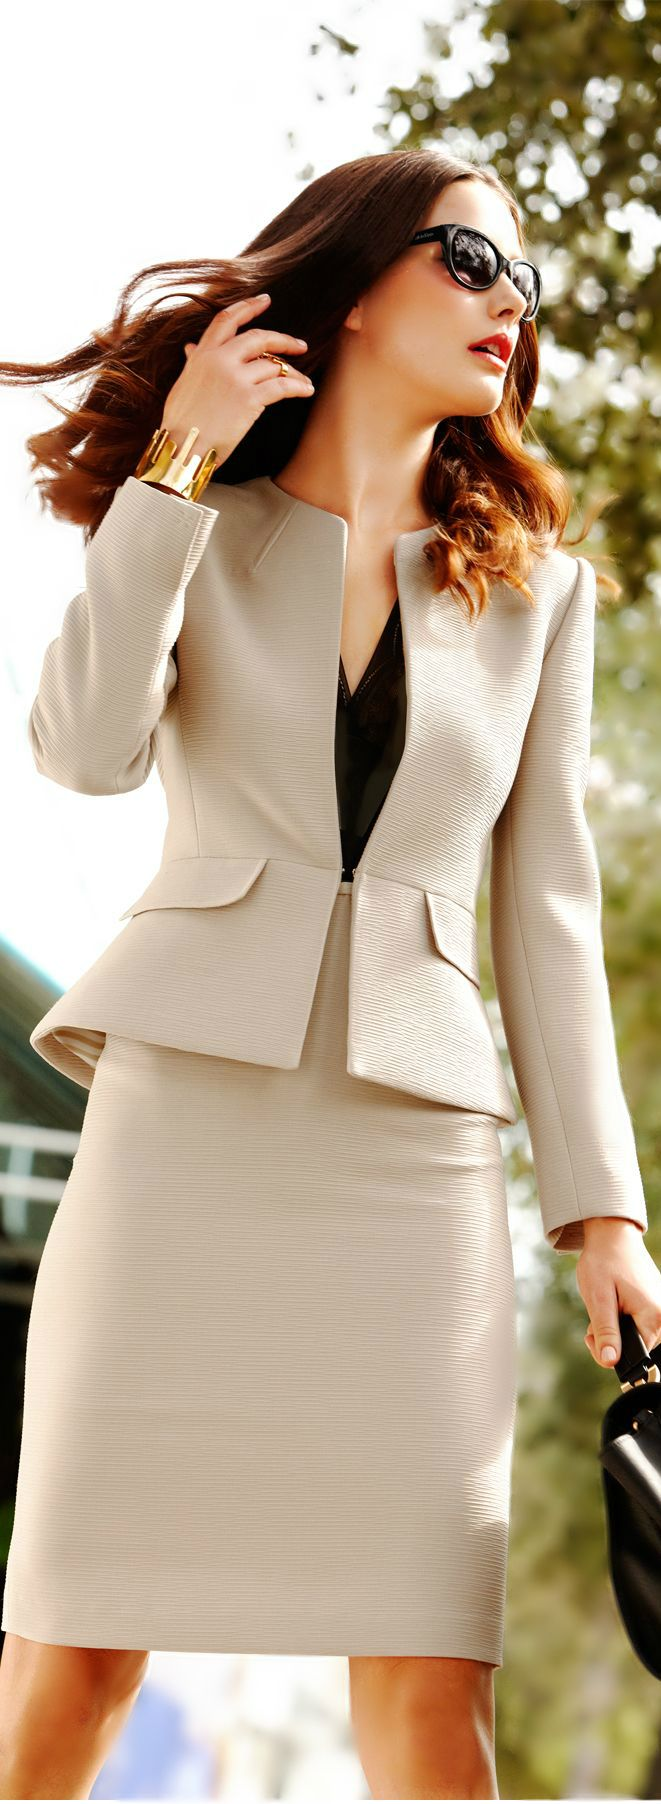 A neutral suit is a great asset to have in your wardrobe because it can be worn year round and goes with everything.  Getting just the right cut is essential to make it look sophisticated and chic instead of boring and frumpy.